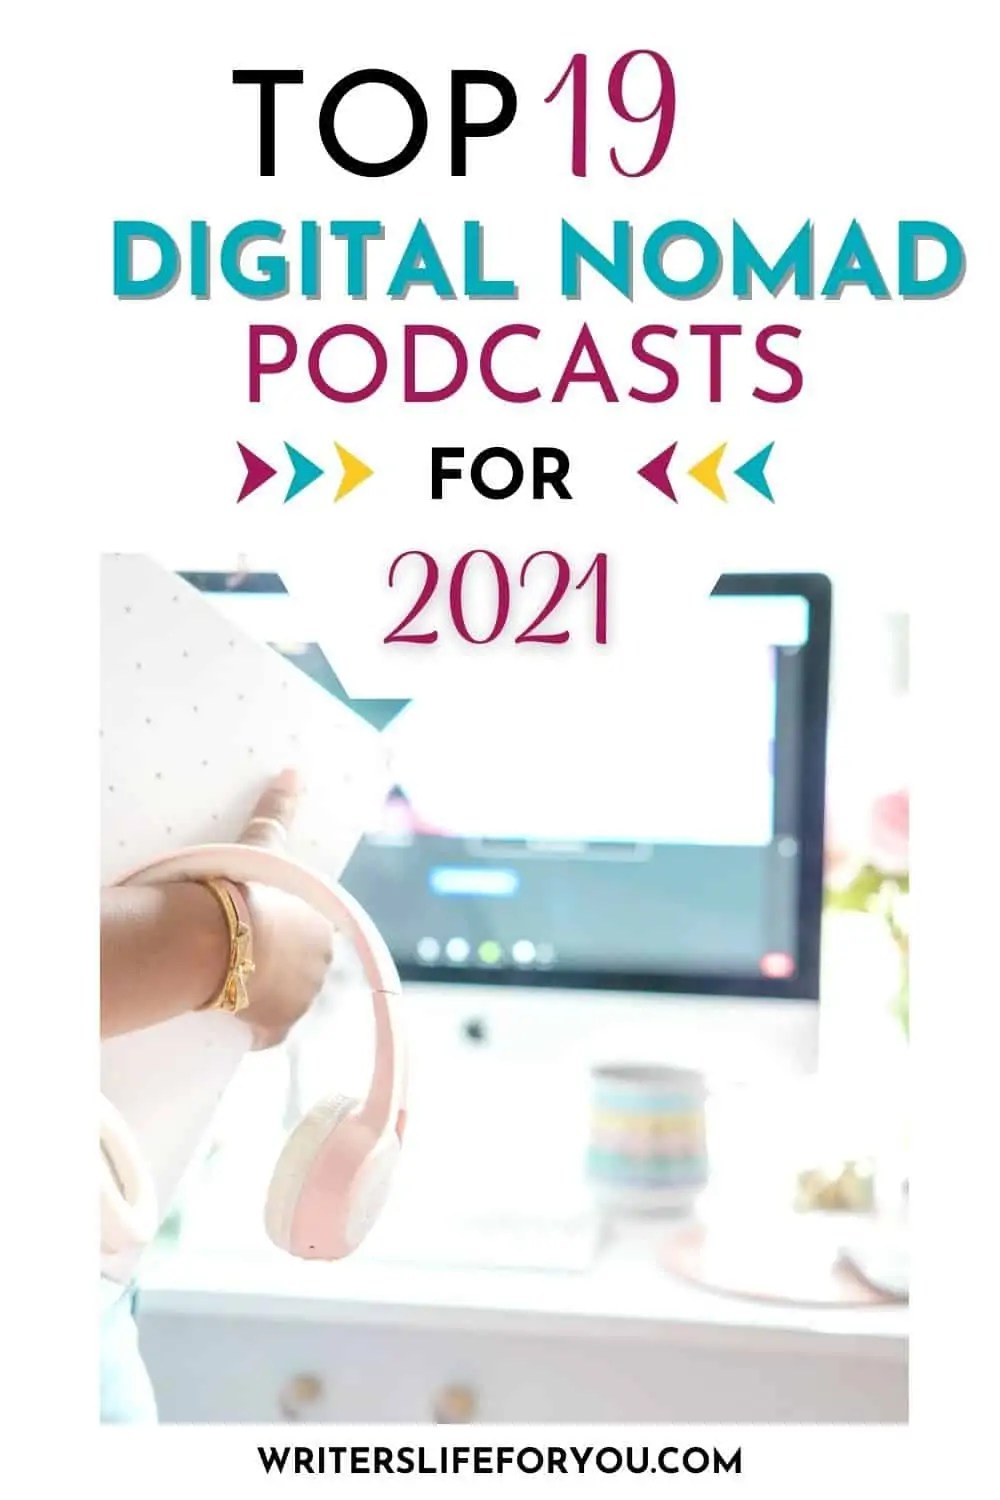 20 of the Best Digital Nomad Podcasts You Need to Listen To in 2021